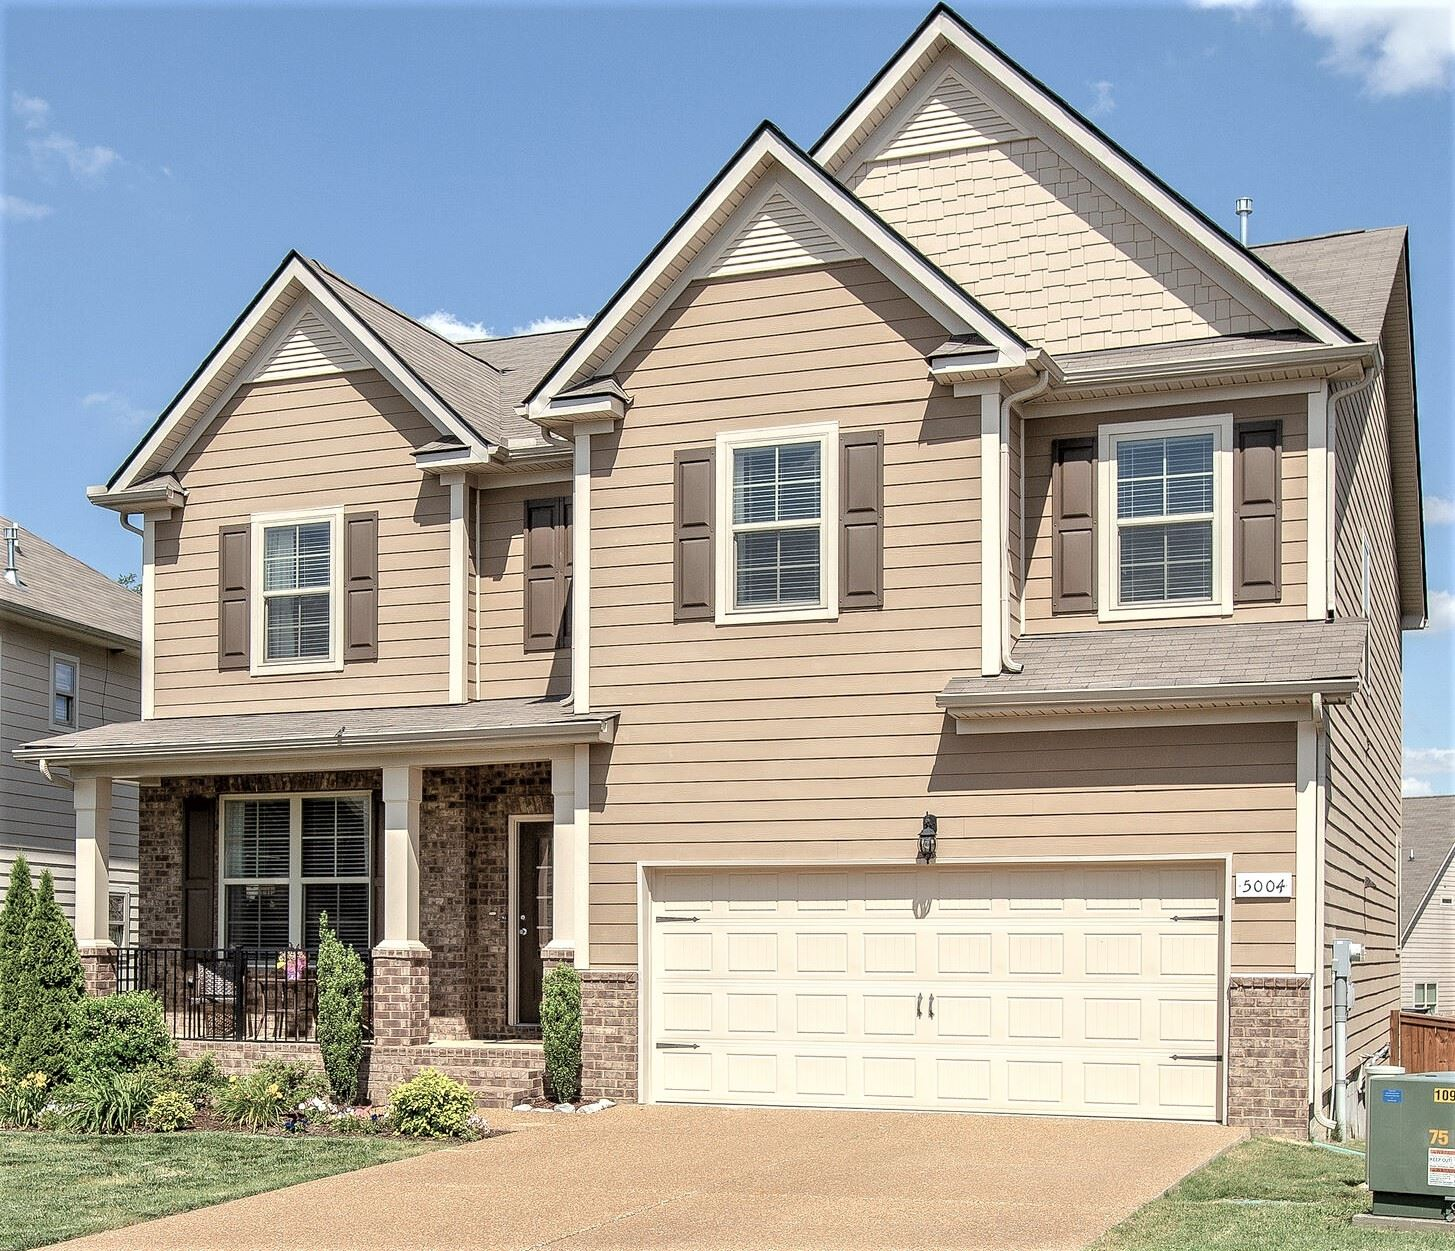 Photo of 5004 Colton Dr, Spring Hill, TN 37174 (MLS # 2156110)